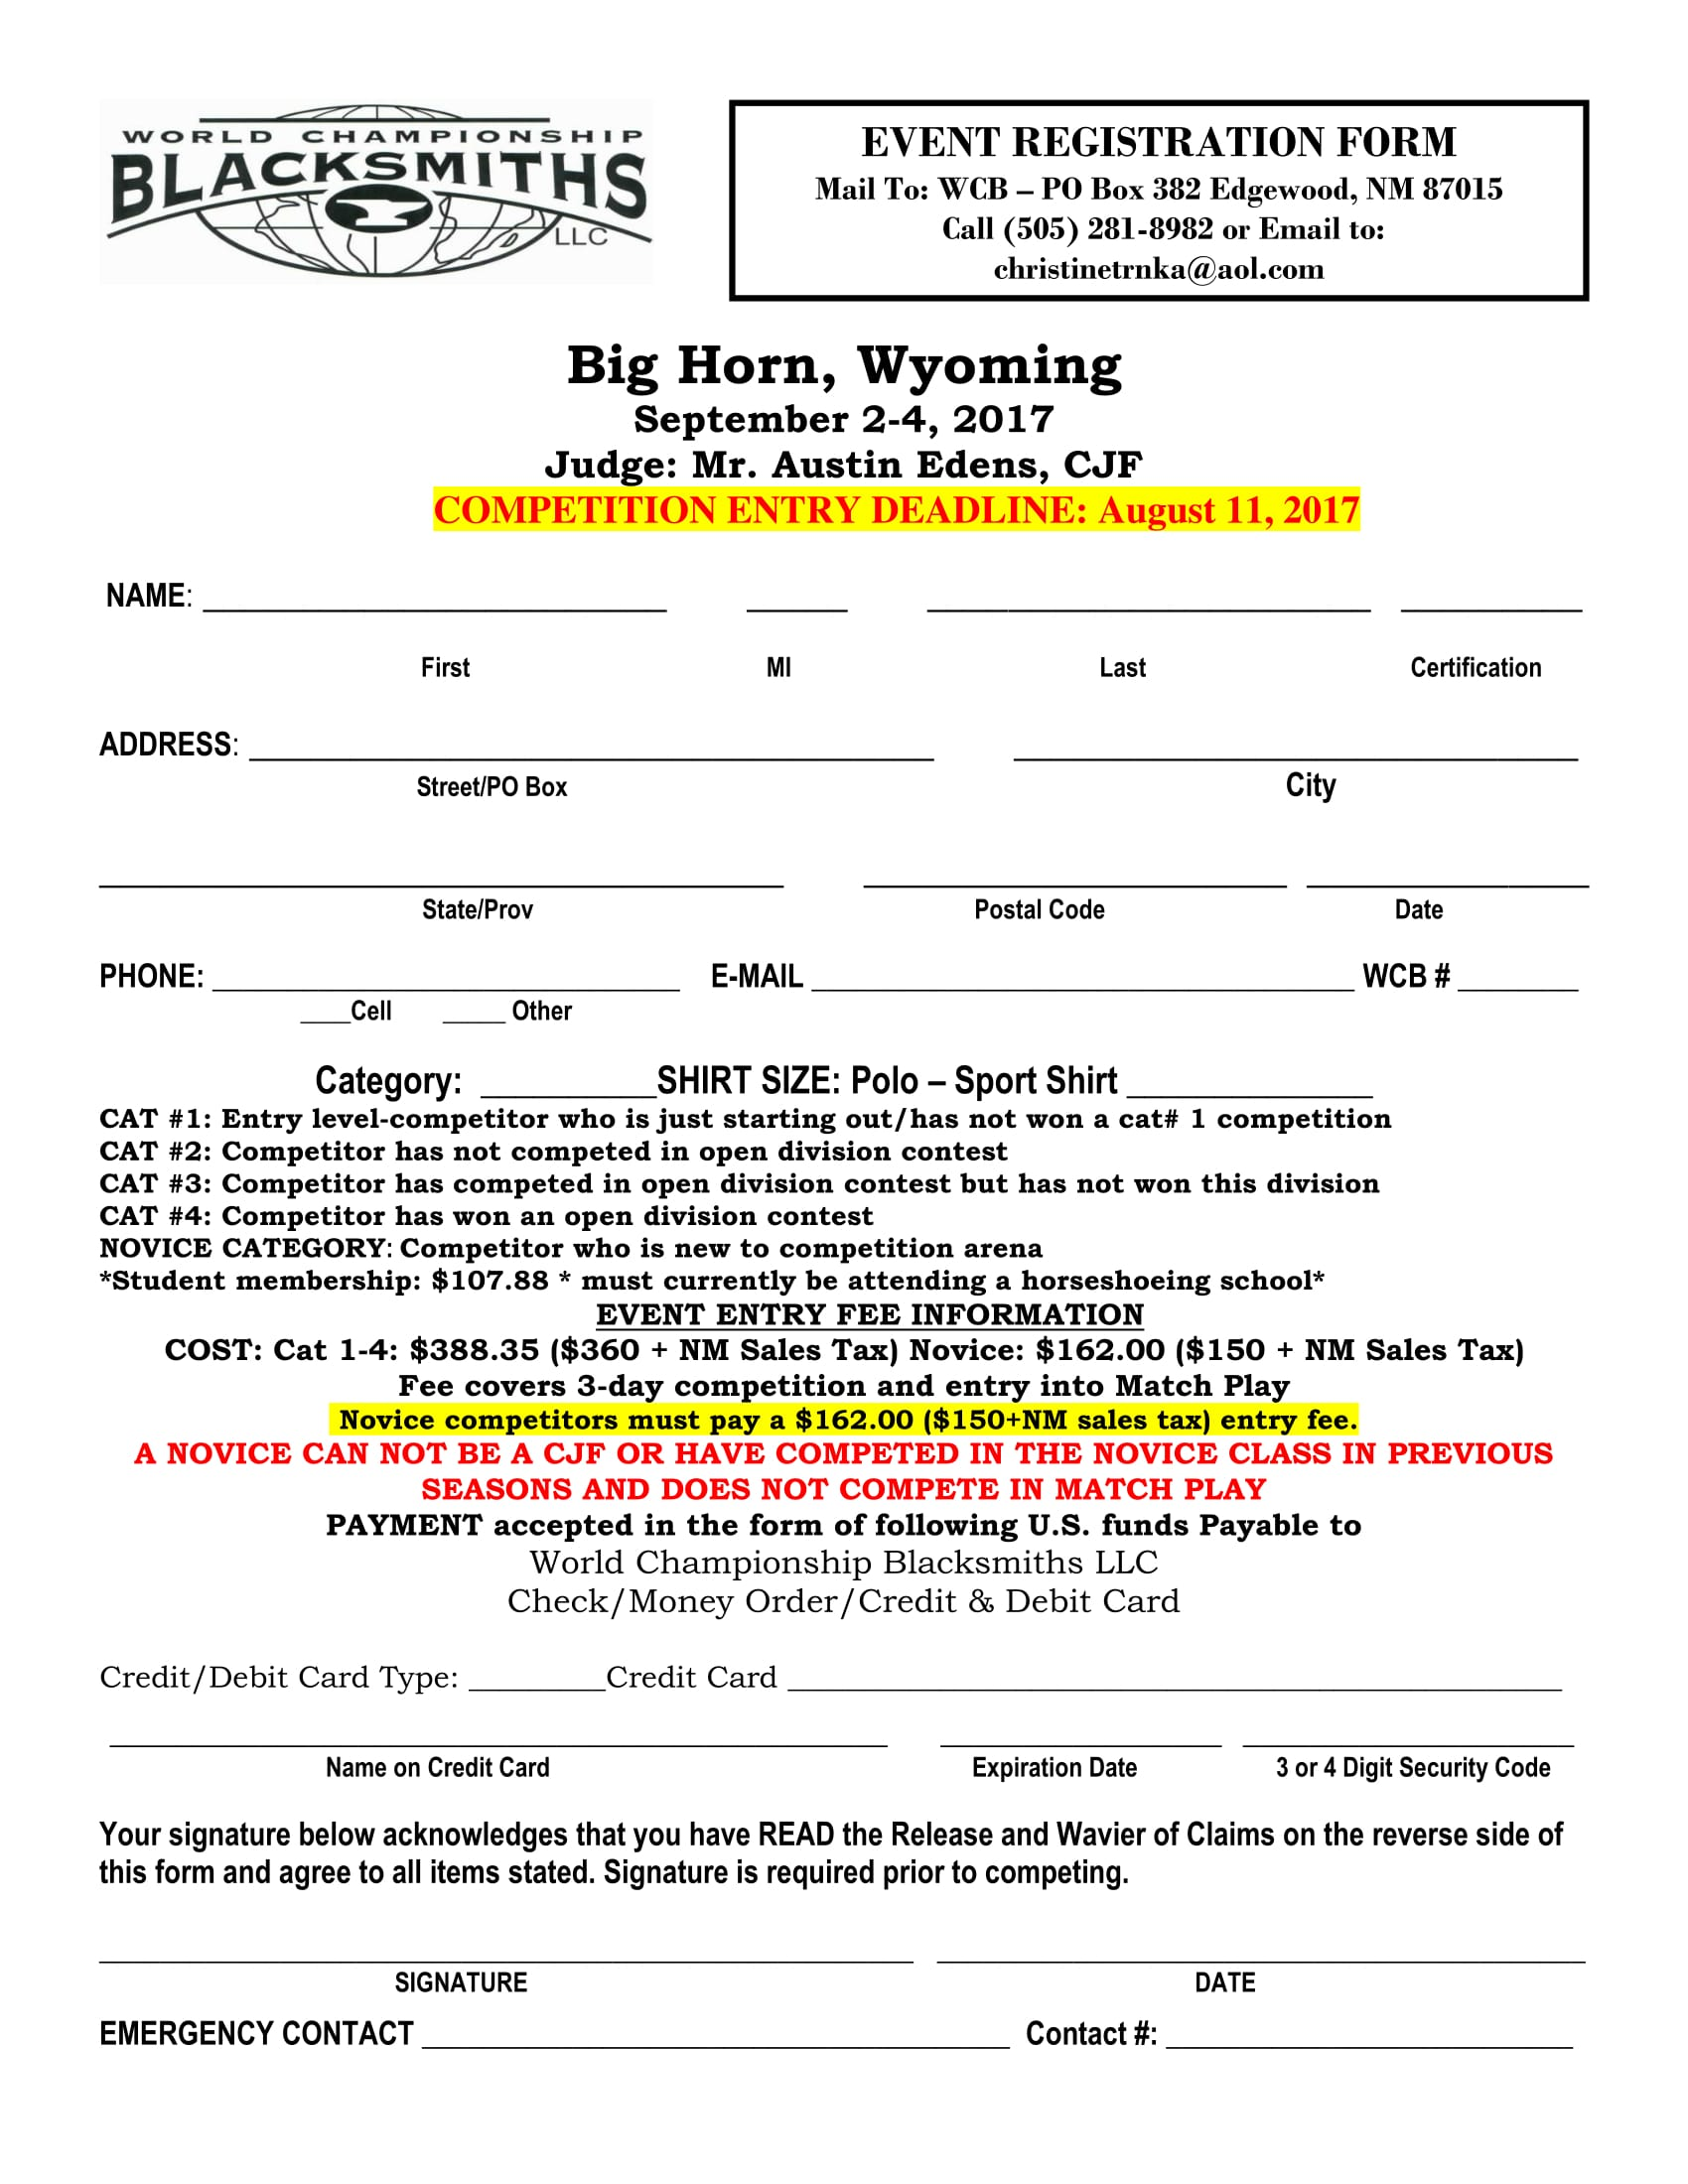 blacksmith event registration form 1